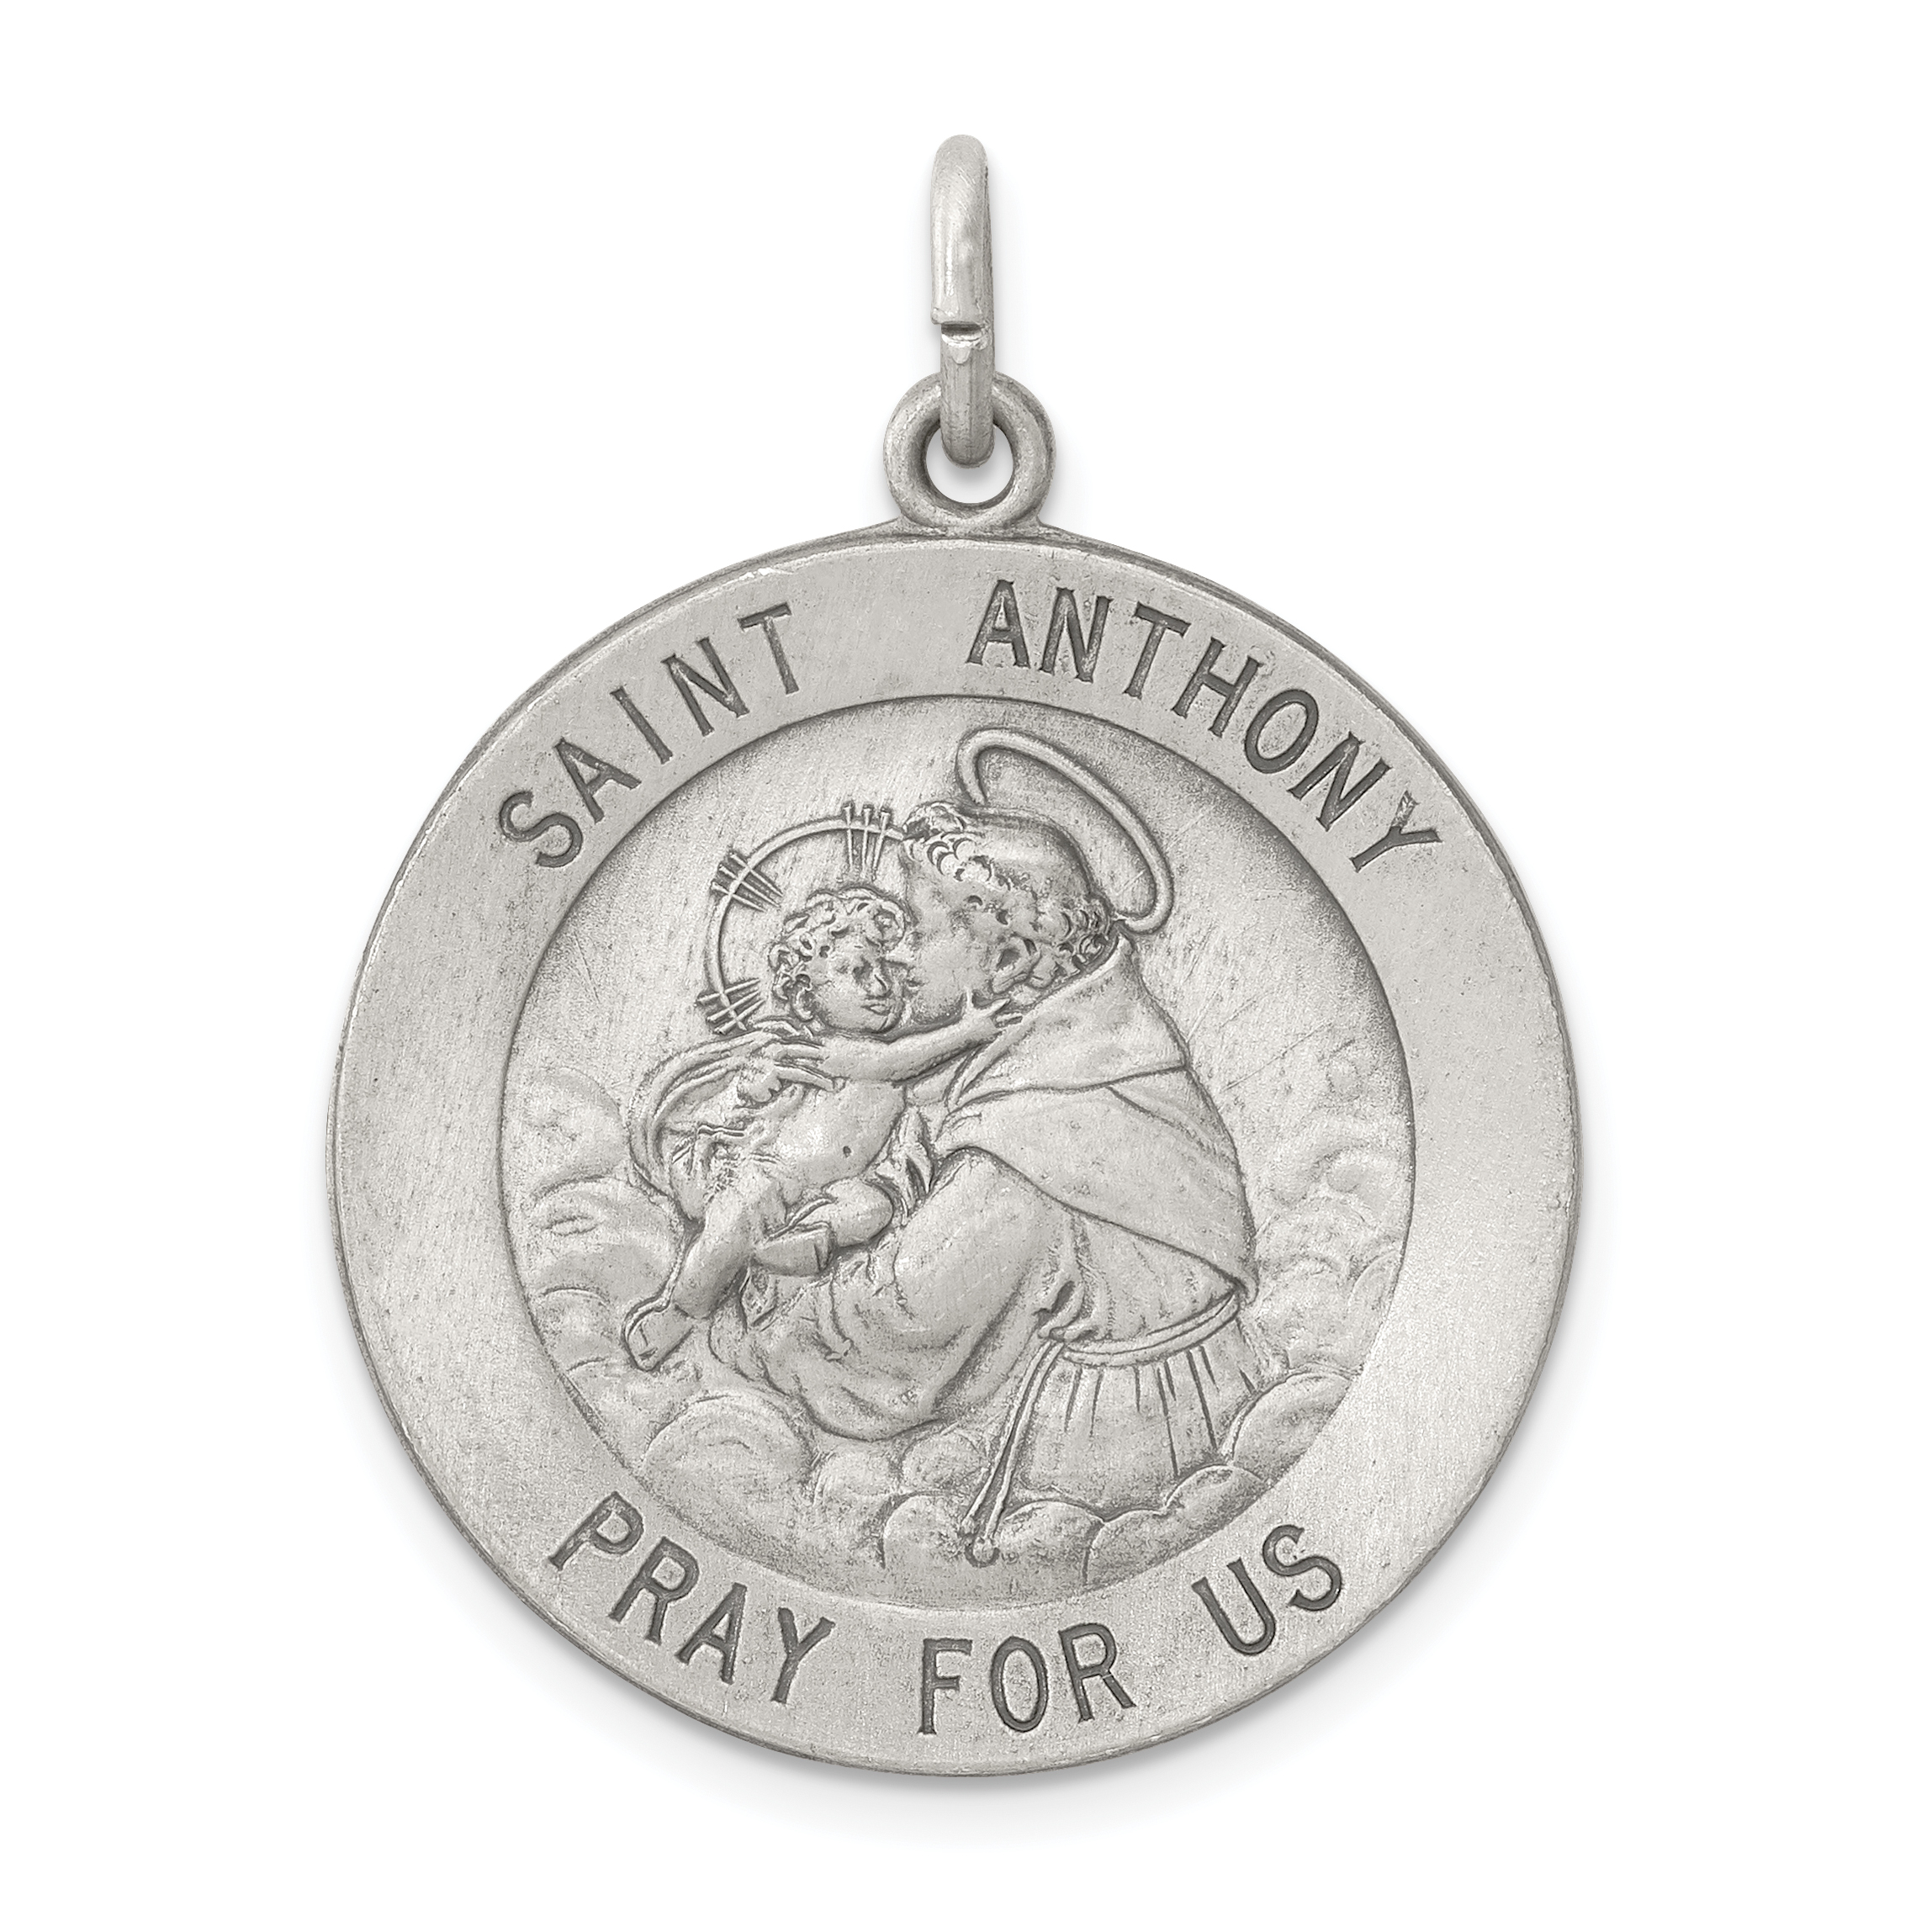 925 Sterling Silver Saint Anthony Medal Pendant Charm Necklace Religious Patron St Fine Jewelry Gifts For Women For Her - image 2 de 2